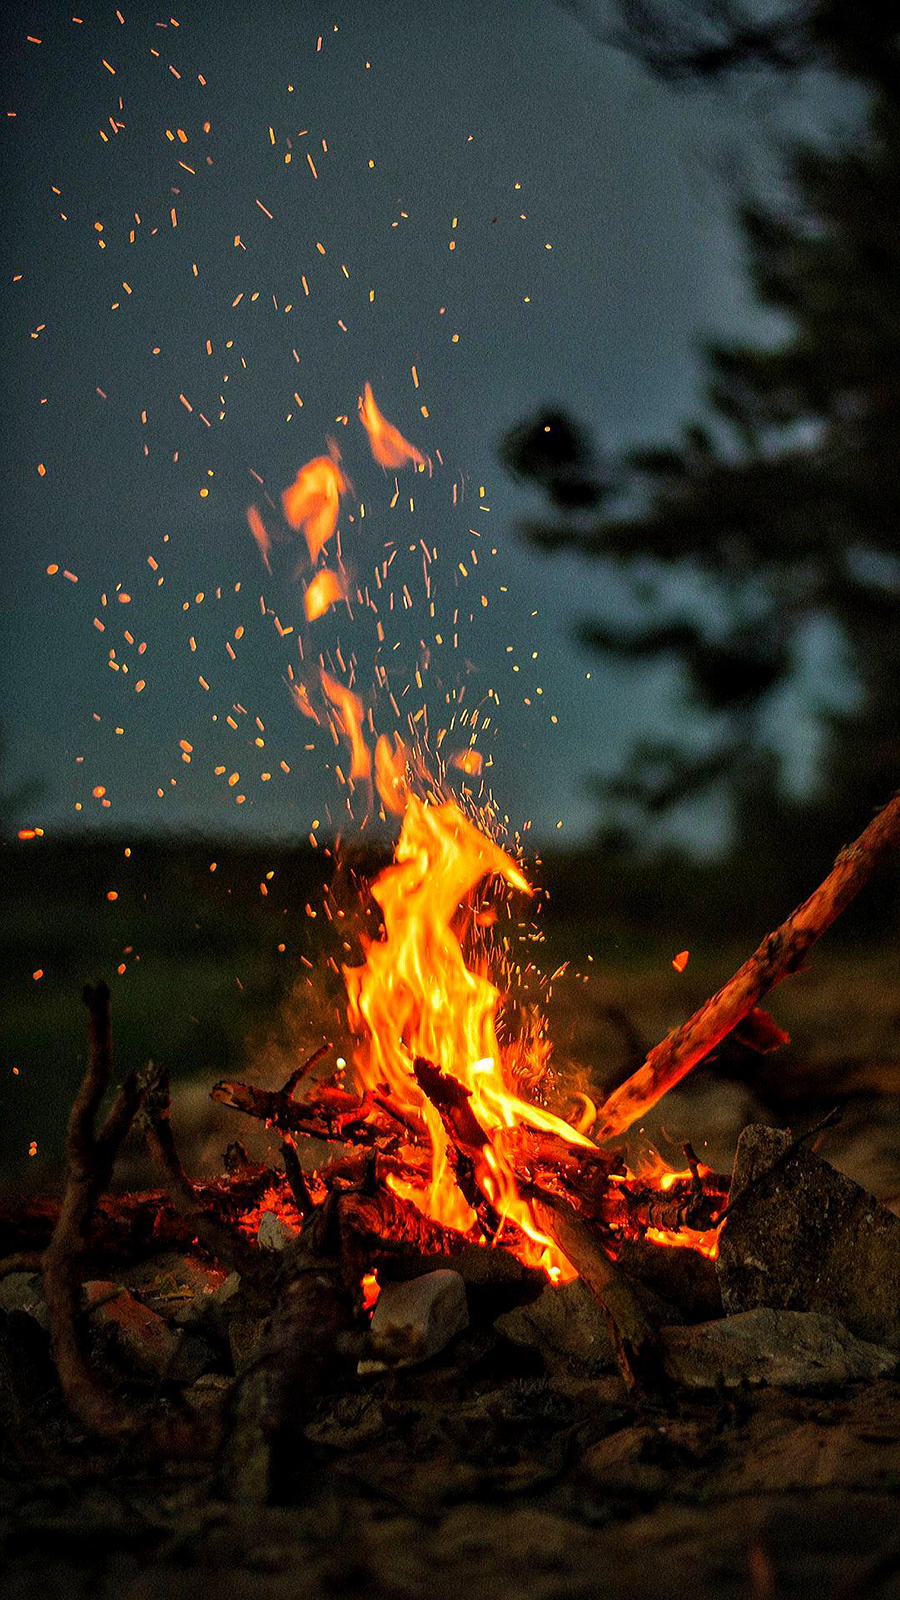 Nature & Fire Wallpapers Free Download For Your Phone